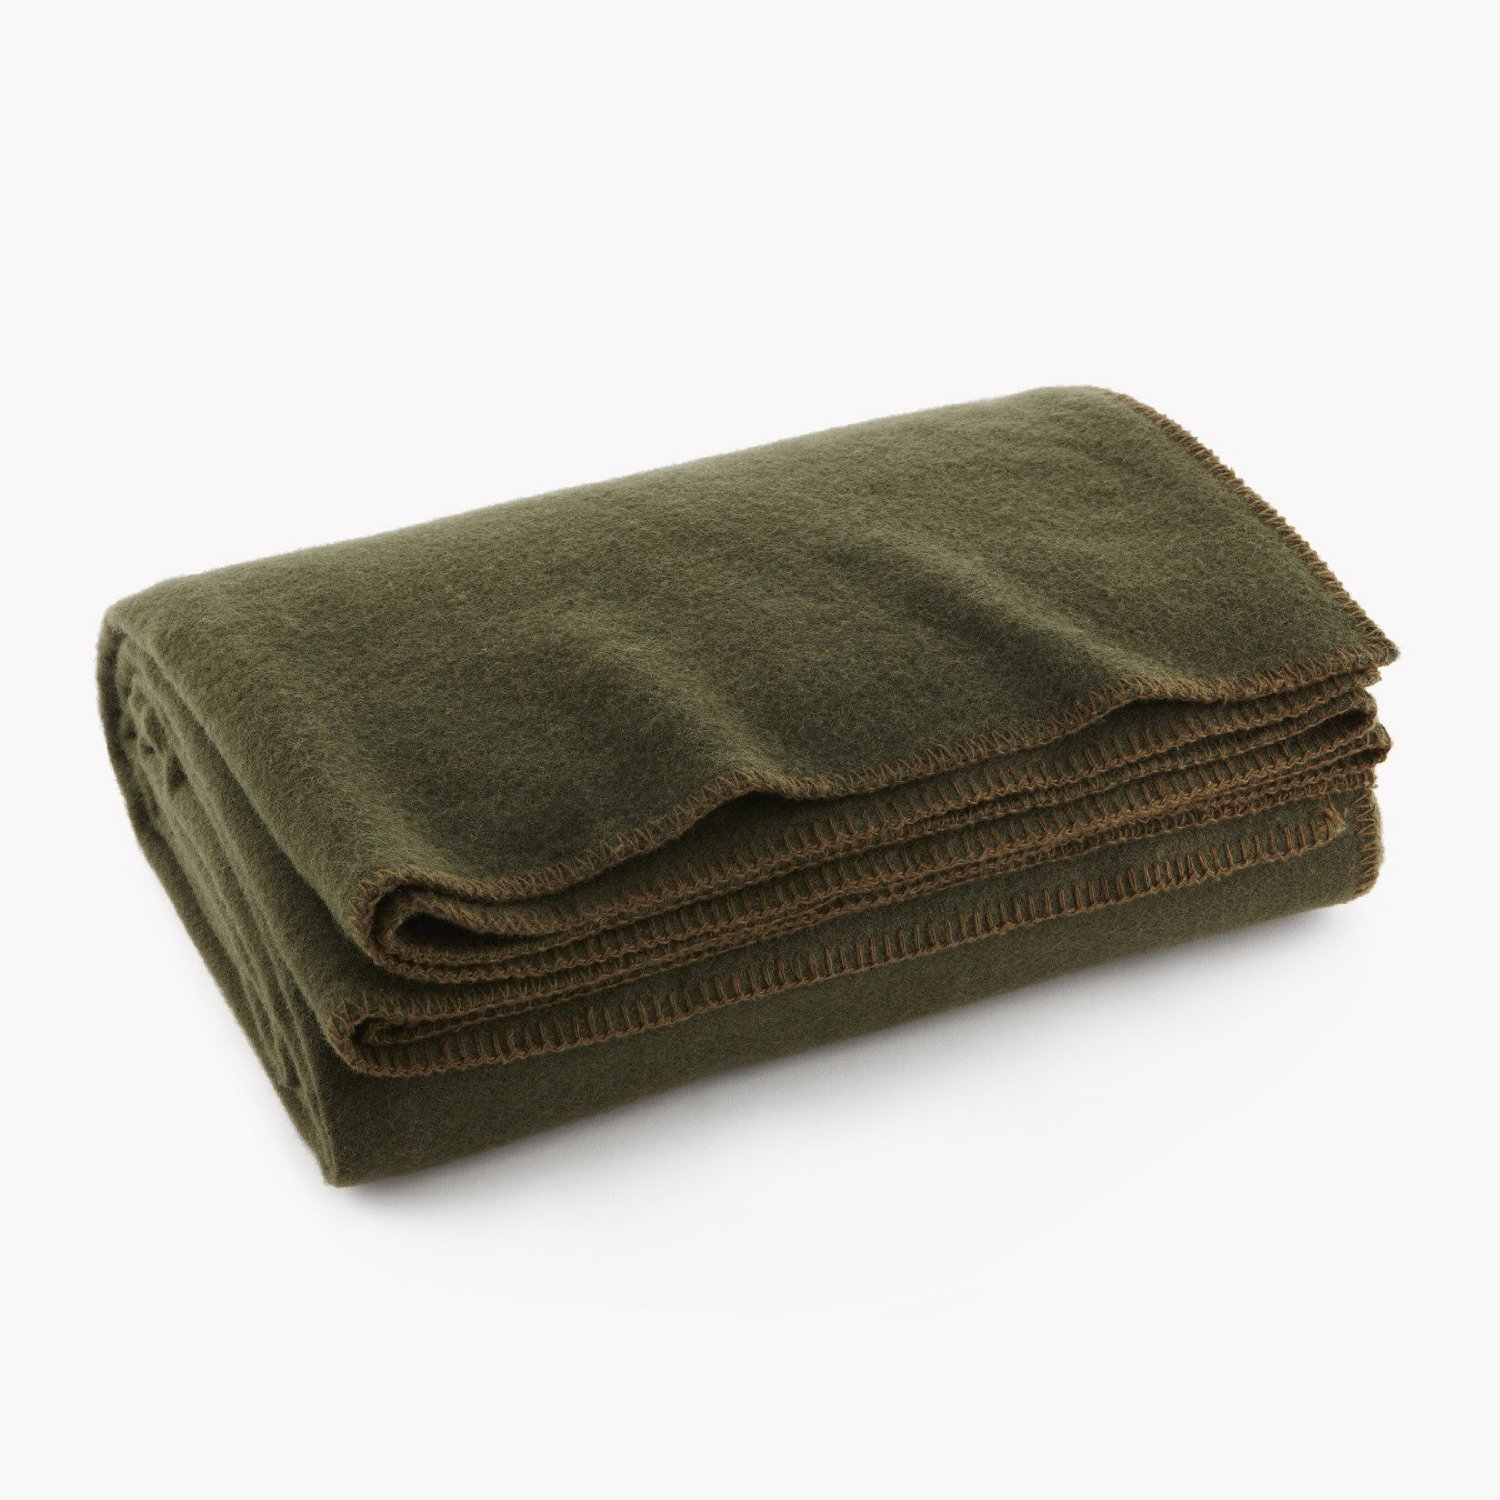 Ever Ready Medical and First Aid Olive Drab Green Wool Blanket